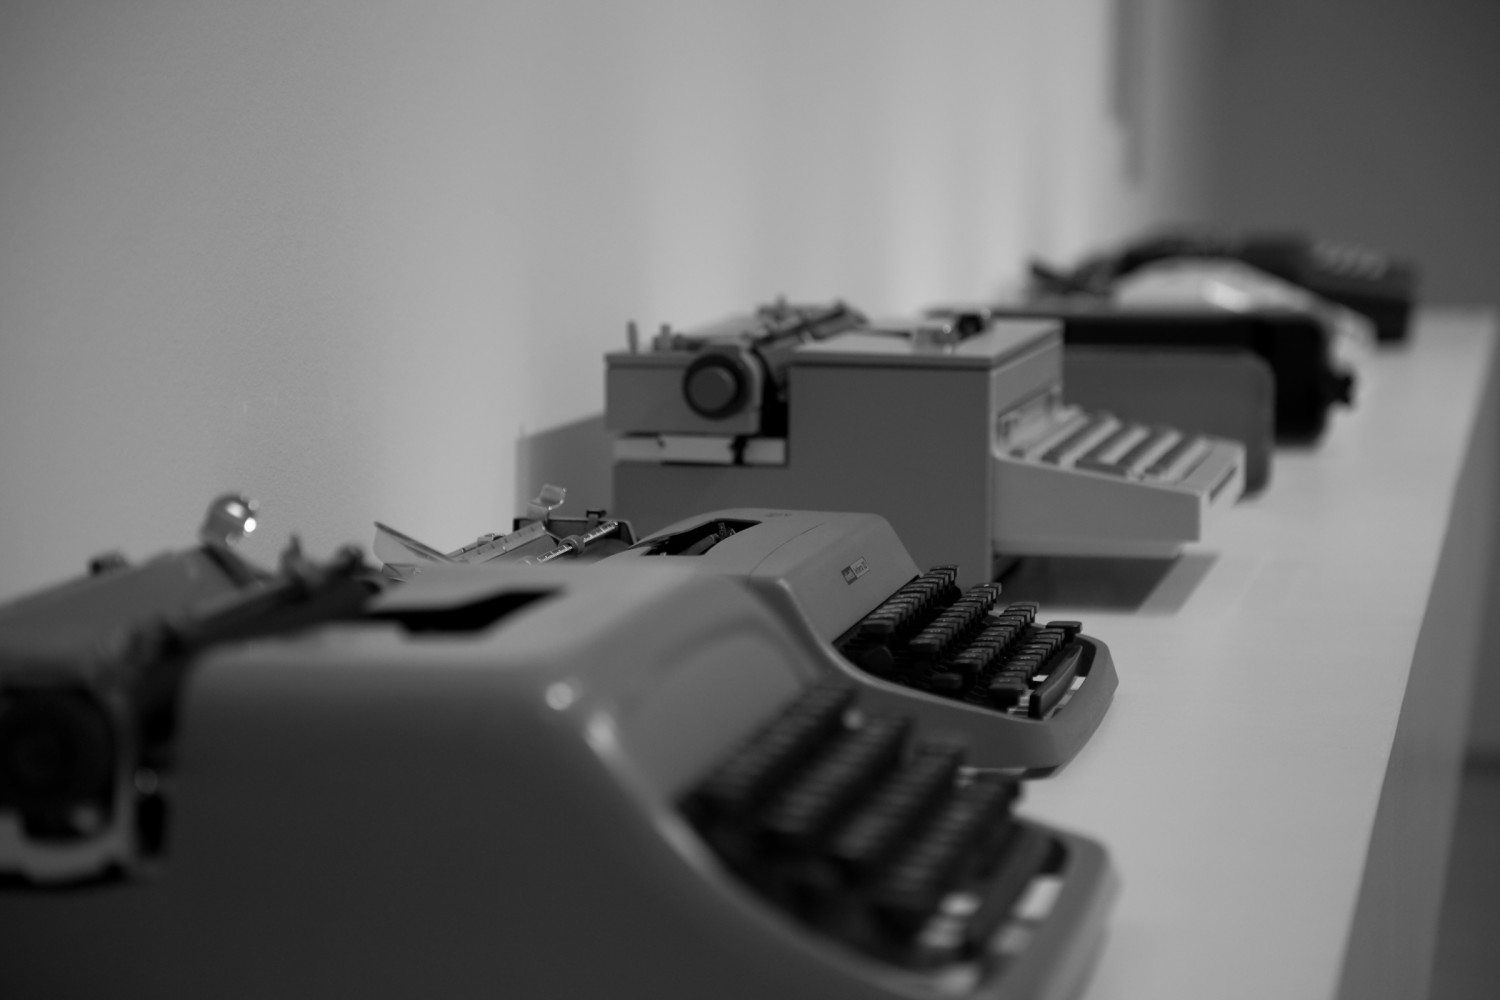 Several typewriters in a row on a long table.